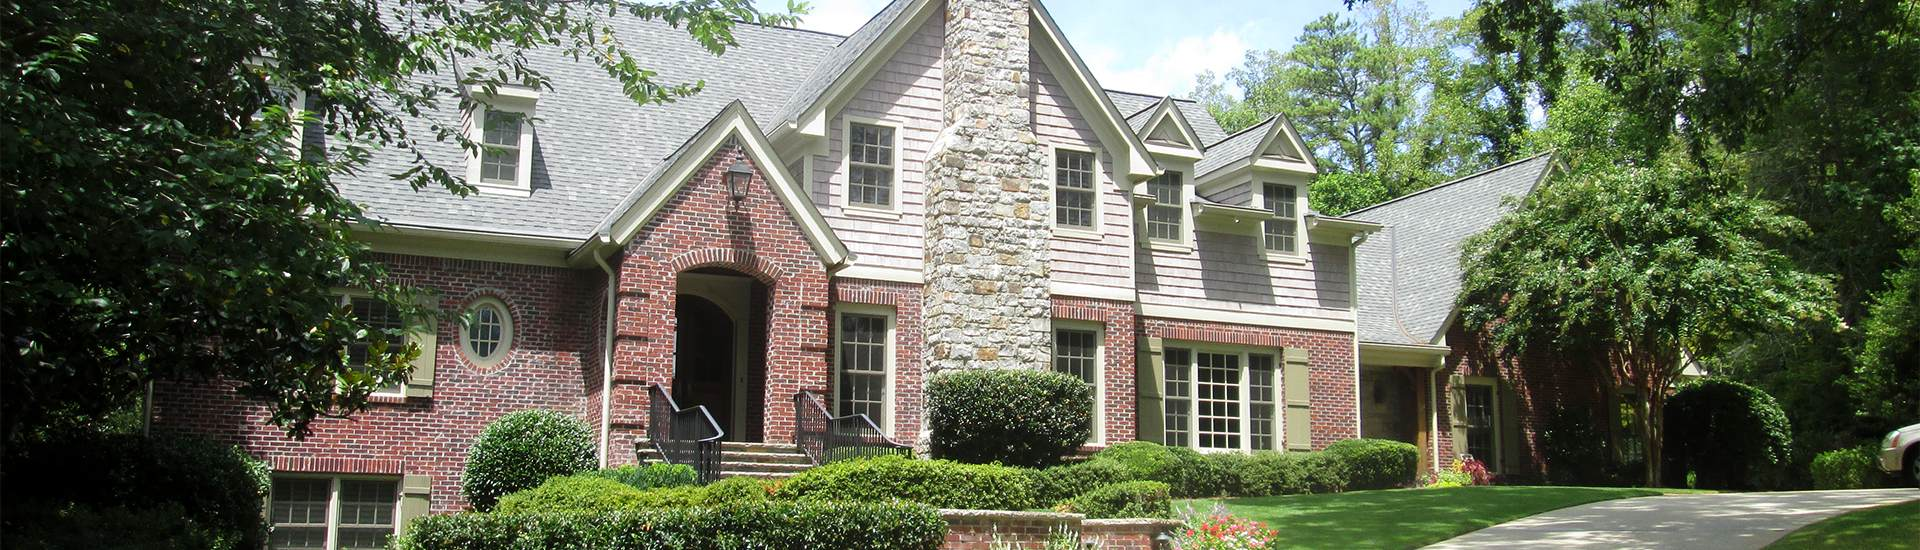 Atlanta Home Energy Audits and Assessments